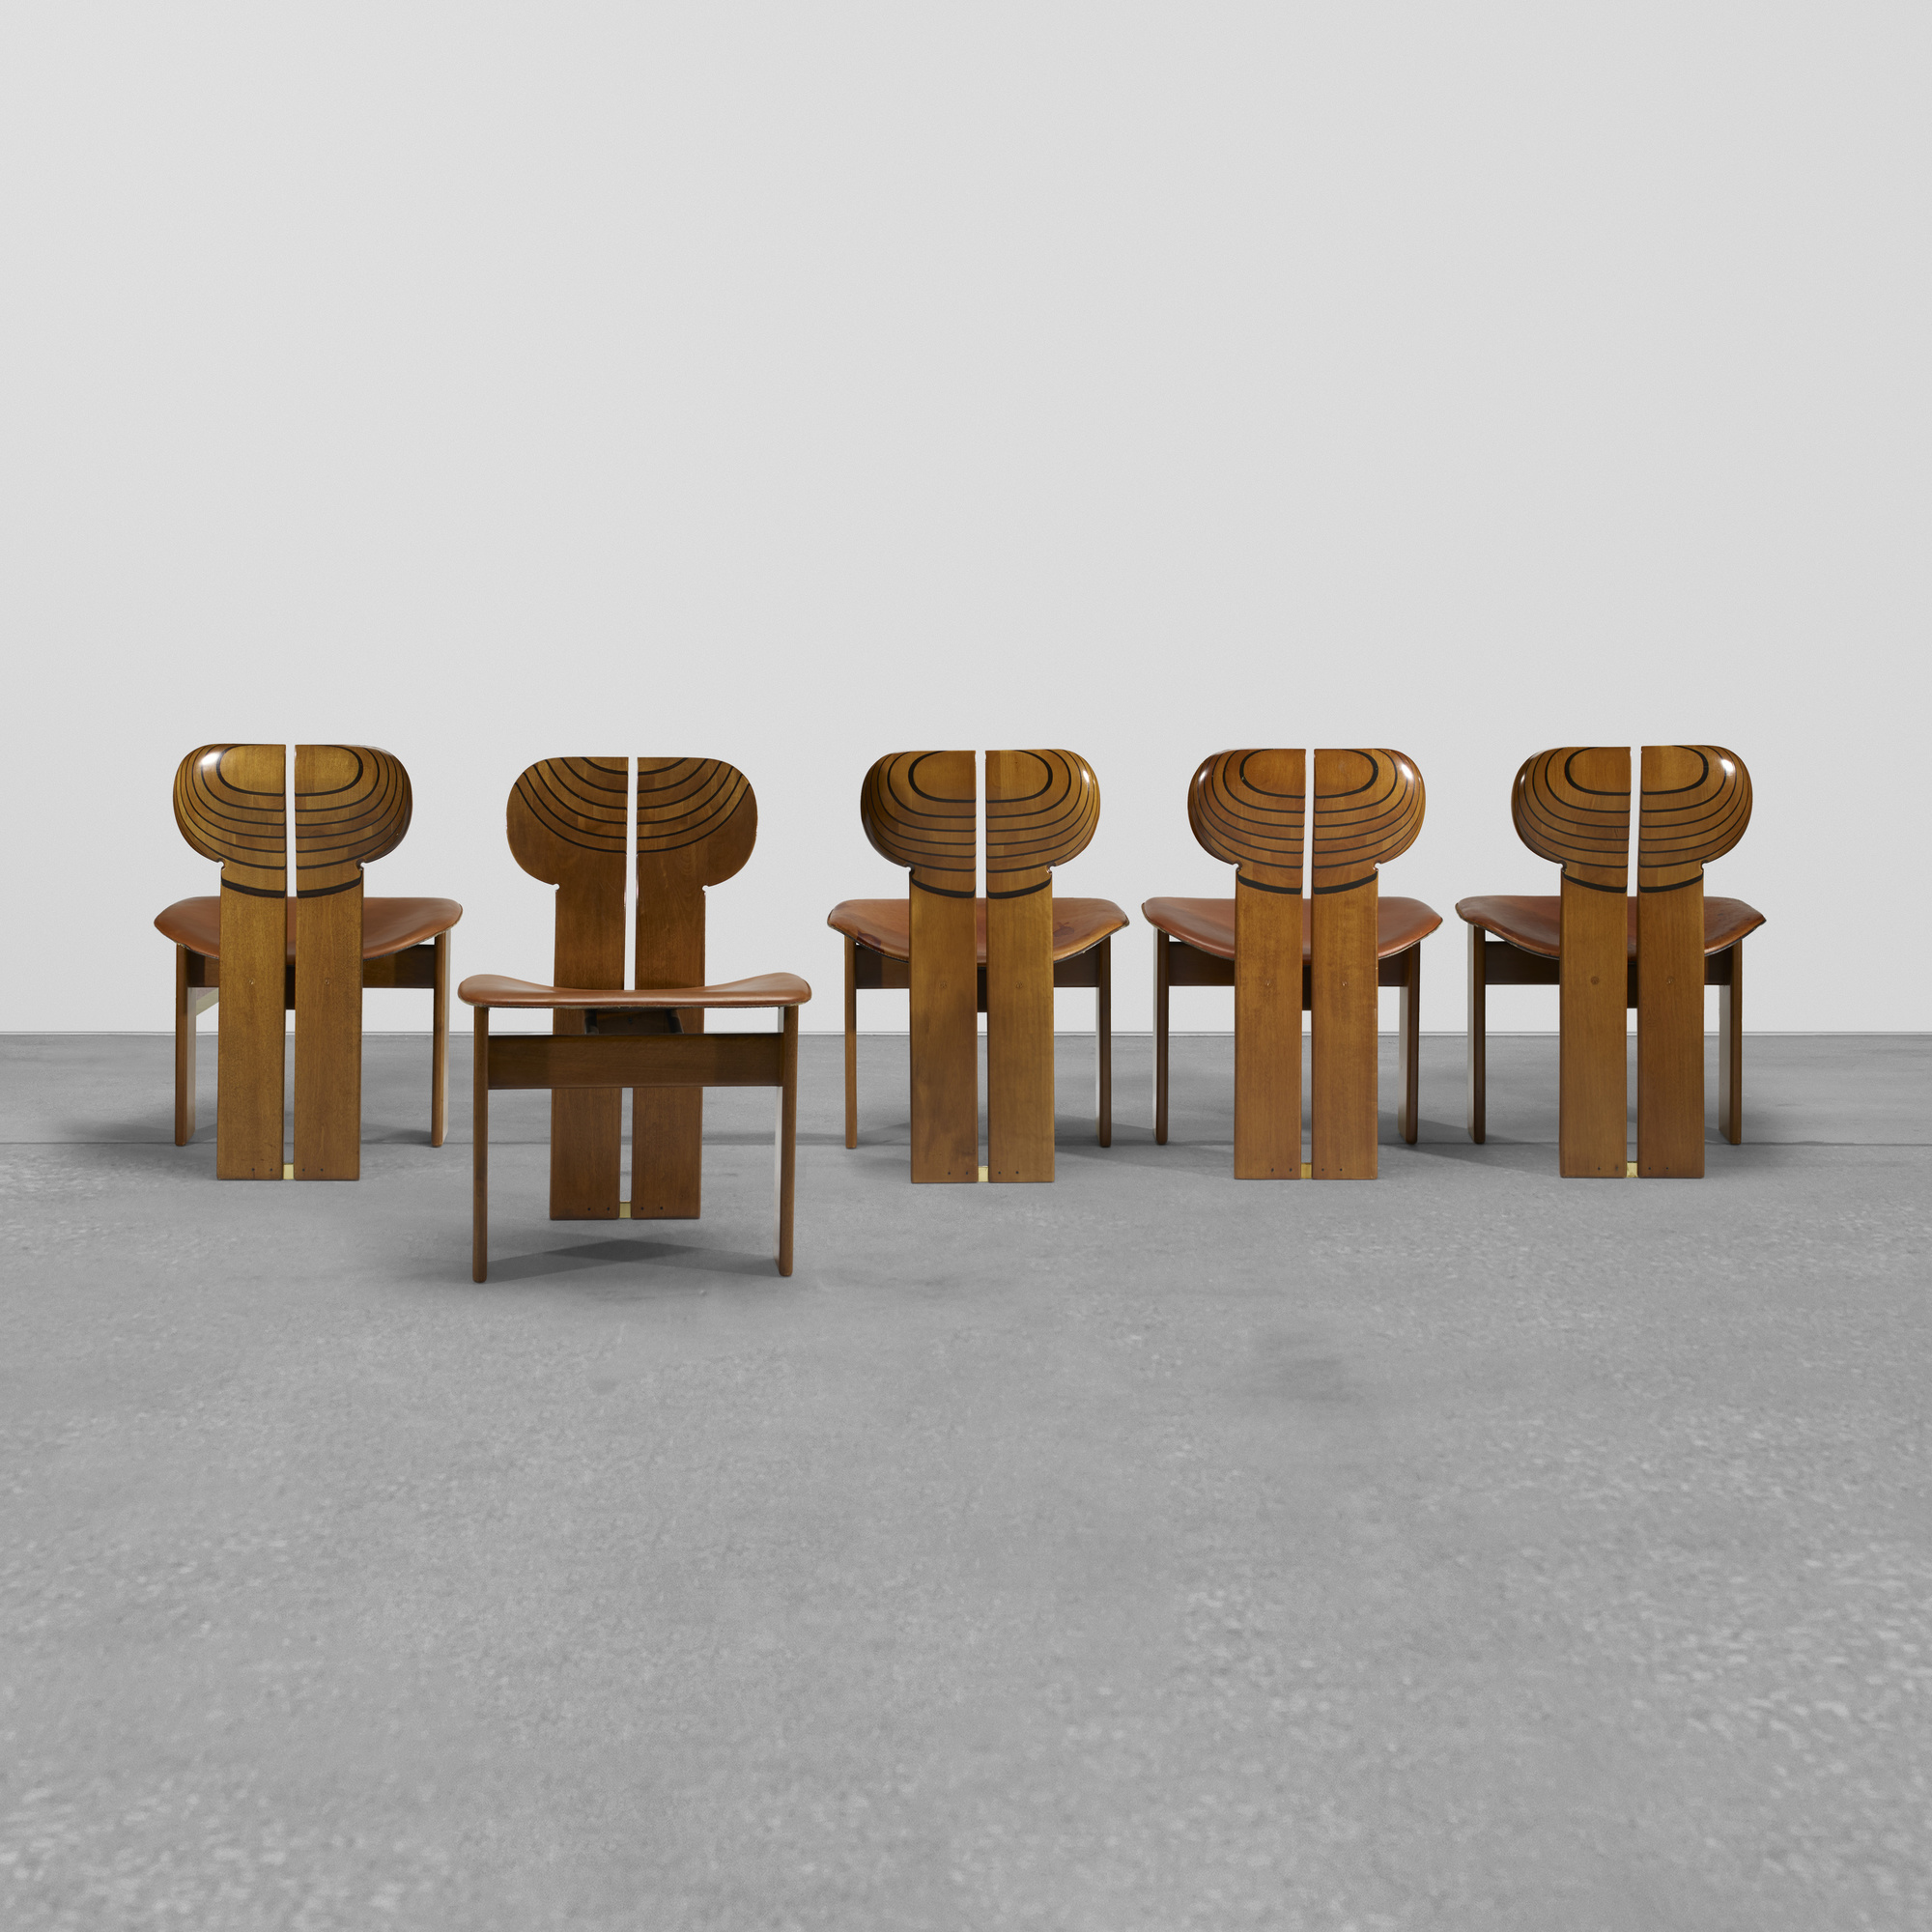 290: Afra and Tobia Scarpa / set of ten Africa chairs from the Artona series (3 of 3)